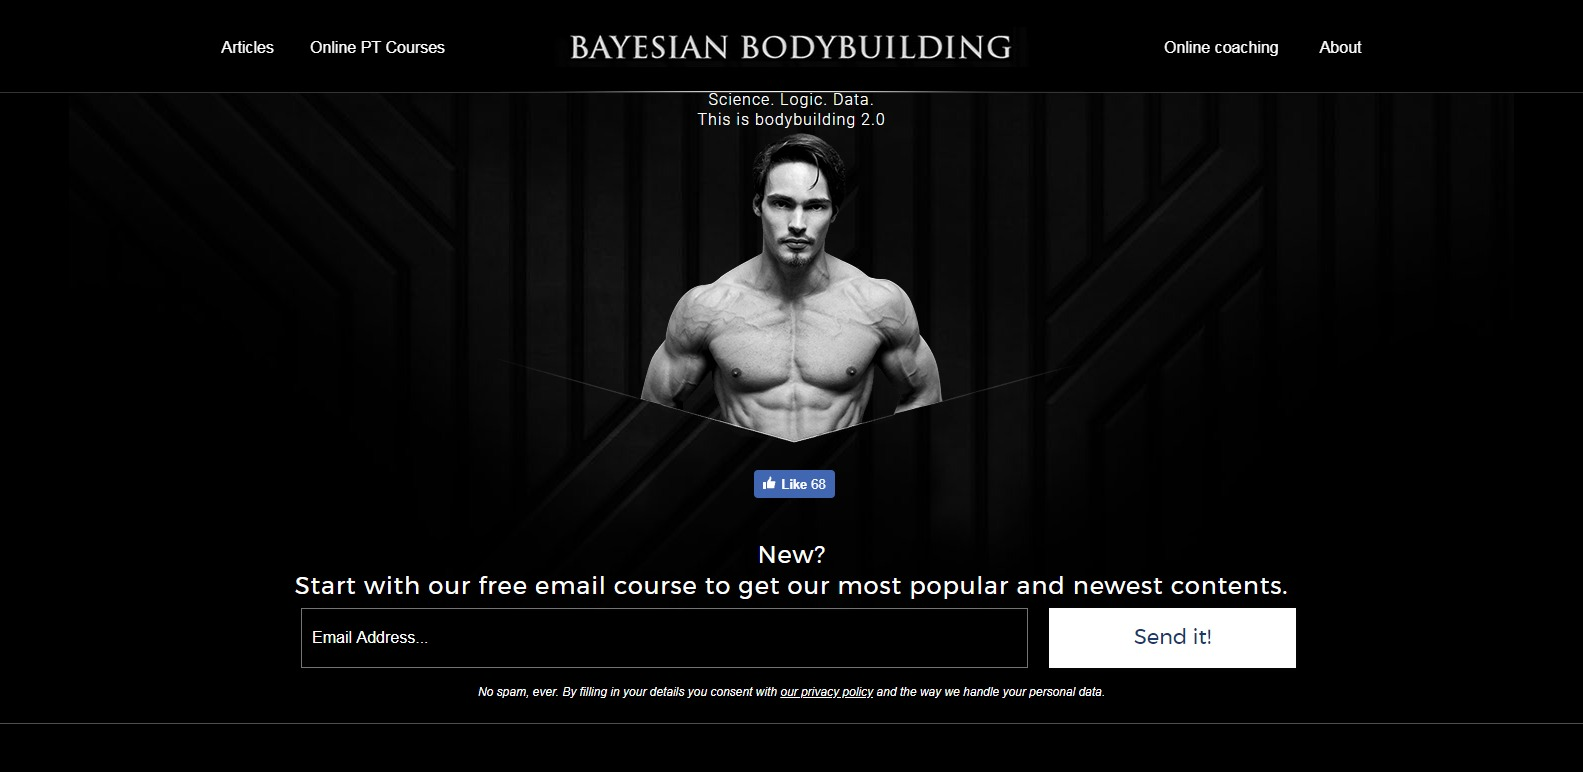 Bayesian Bodybuilding personal trainers